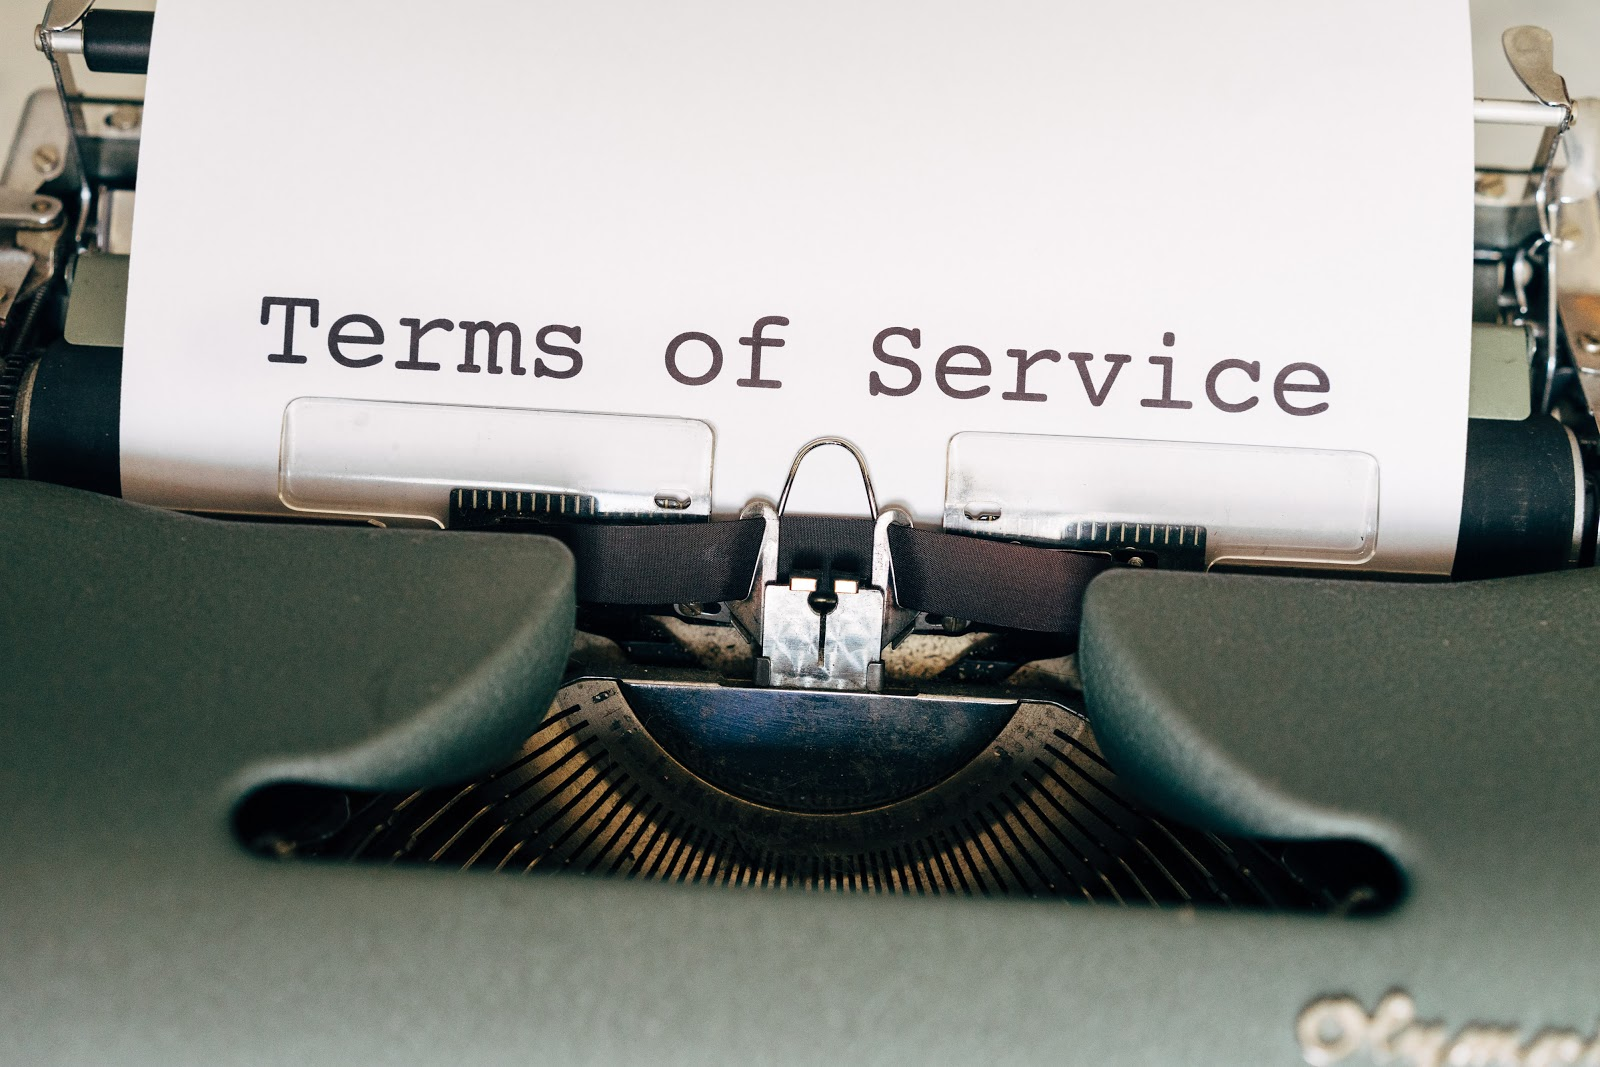 Digital waiver mentions the terms of service of a business